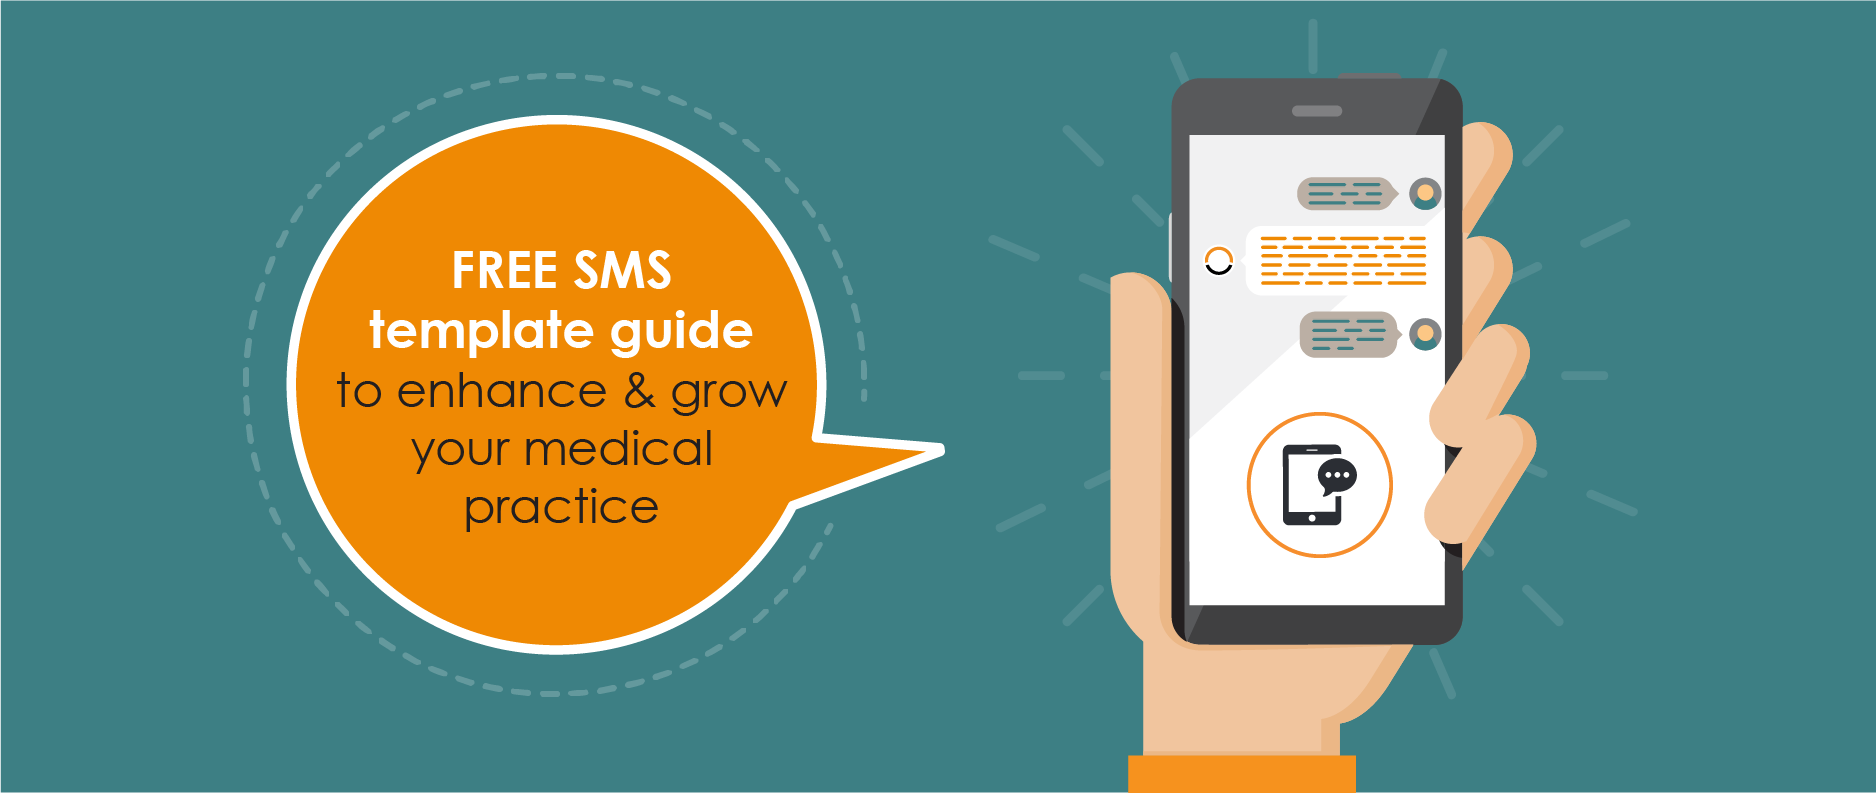 FREE SMS template guide to enhance & grow your medical practice